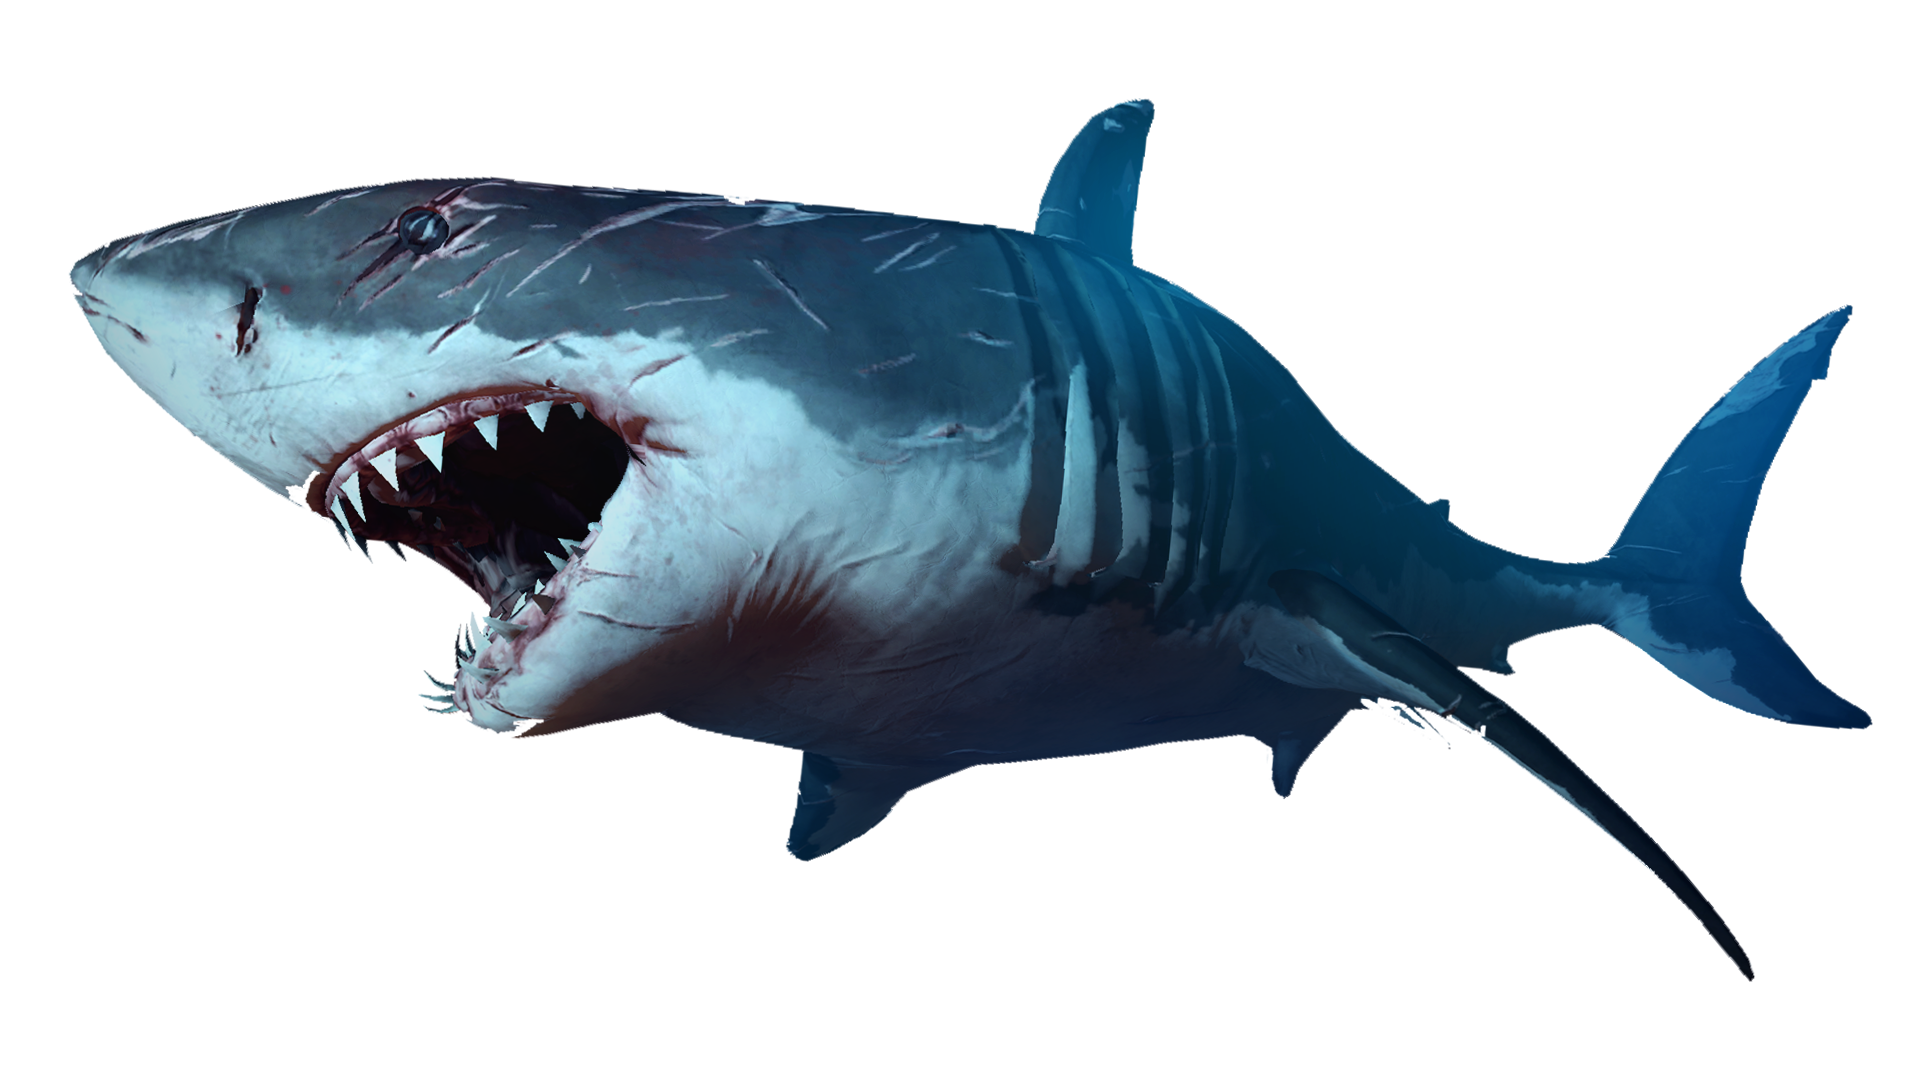 Shark eating fish clipart picture royalty free Pin by Arkhael Greed on Animales | Pinterest | Shark and Animal picture royalty free